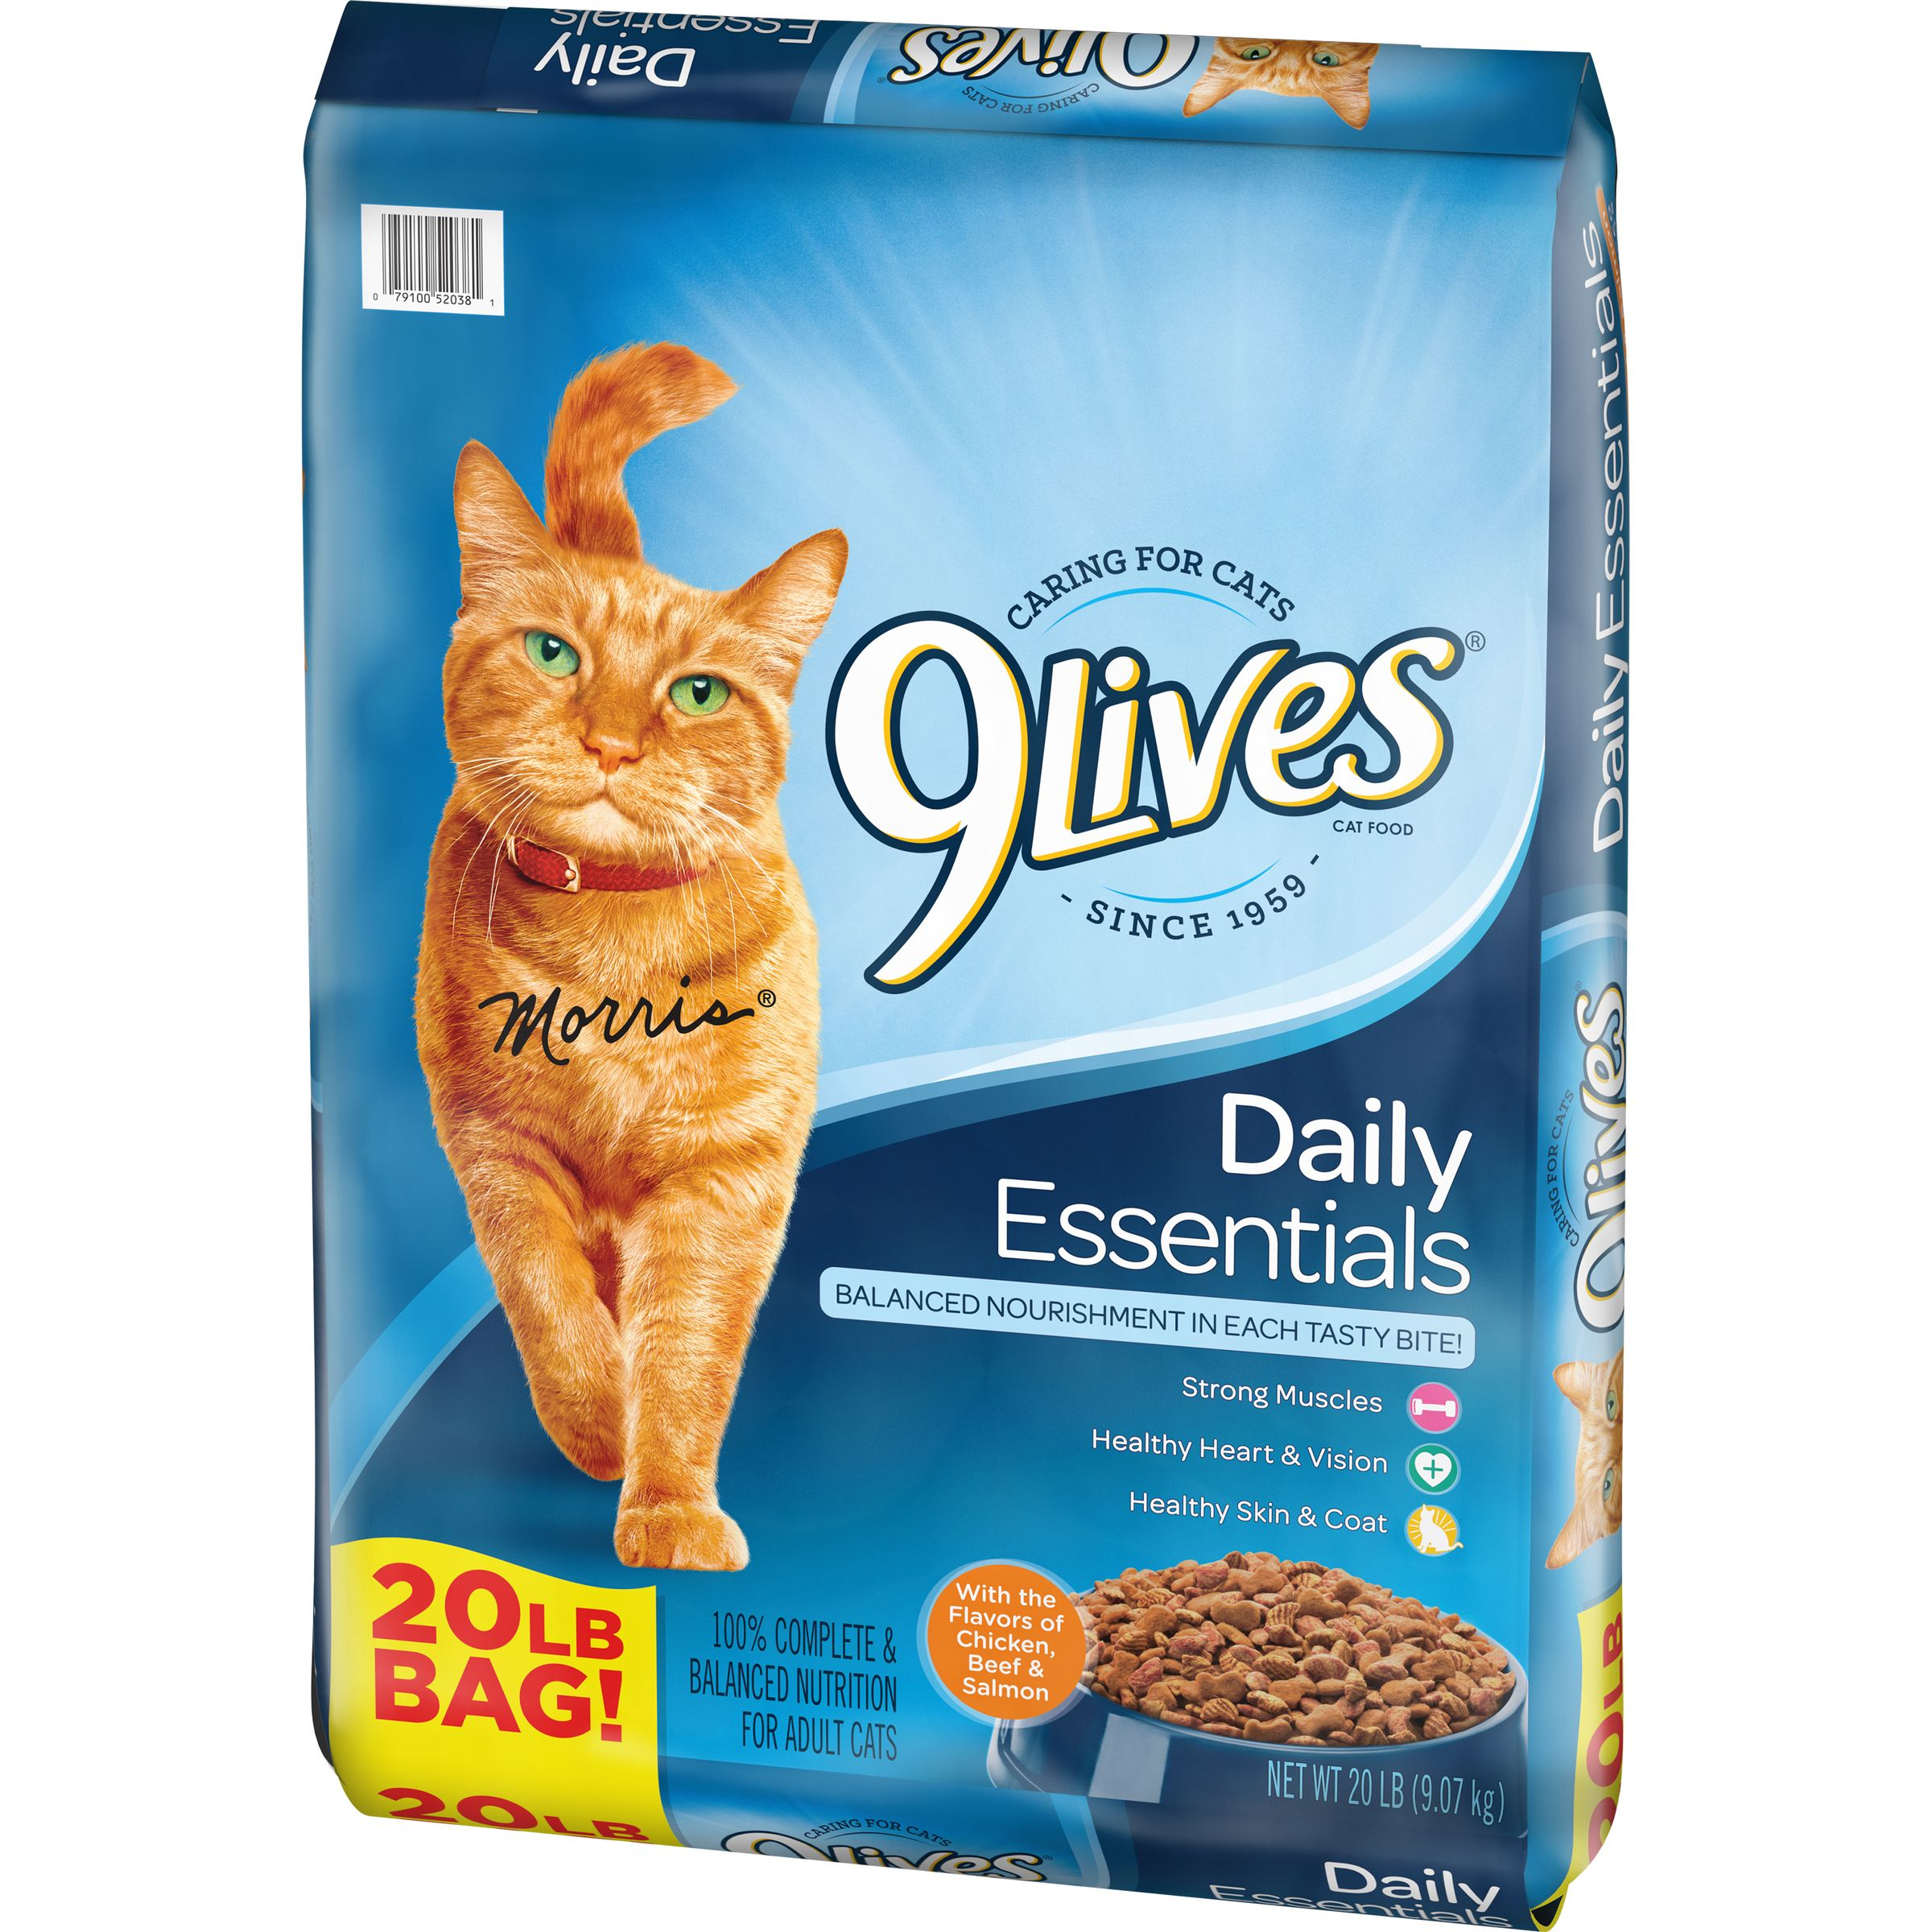 Sessel Pollo 9lives Daily Essentials Dry Cat Food 20 Pound Bag